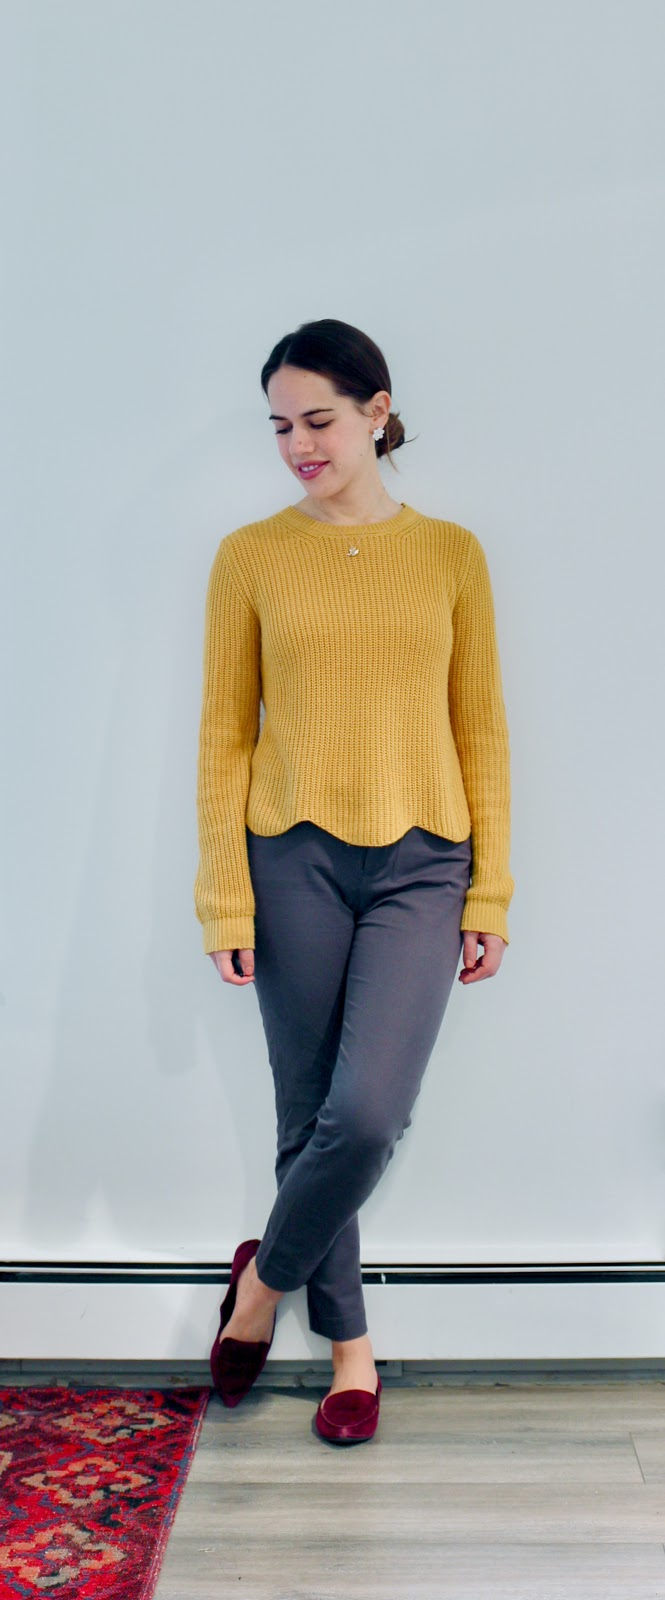 Jules in Flats - Mustard Yellow Scalloped Sweater with Grey Ankle Pants (Business Casual Winter Workwear on a Budget)